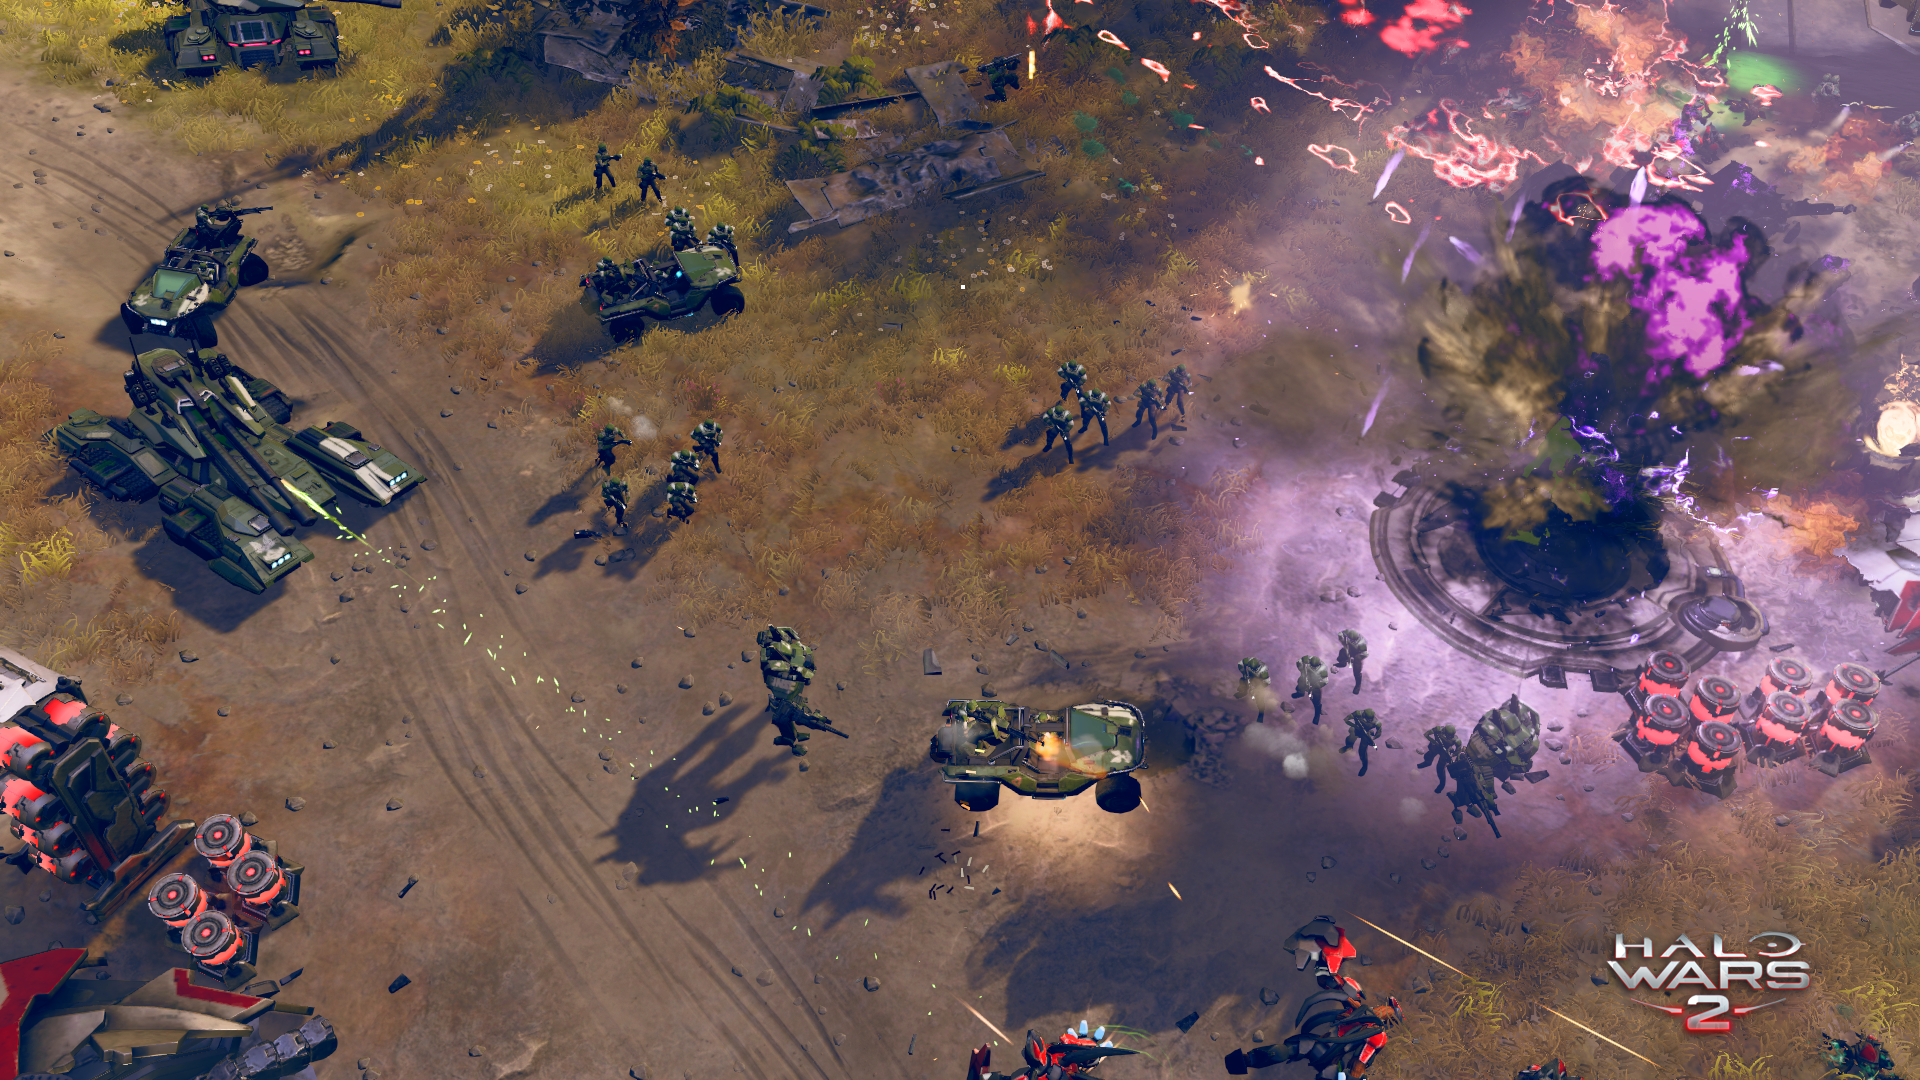 Halo Wars 2 is a real-time strategy game caught between console and